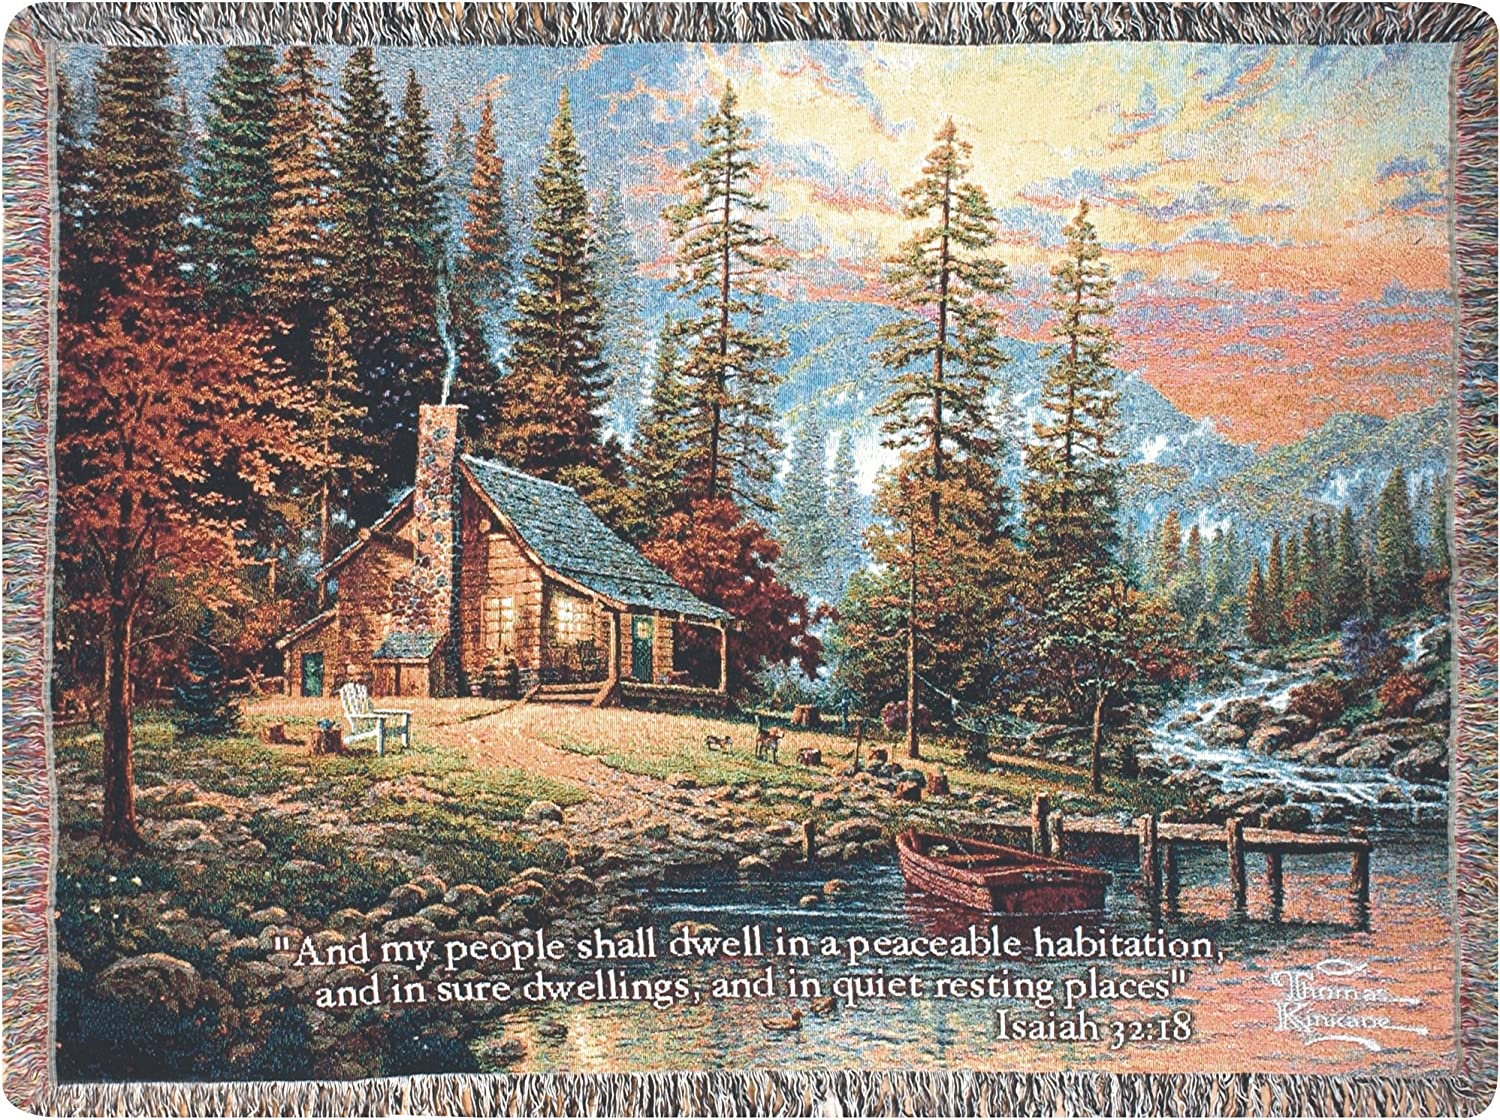 Manual Inspirational Collection 50 x 60-Inch Tapestry Throw with Verse, A Peaceful Retreat by Thomas Kinkade, 60 X 50-Inch